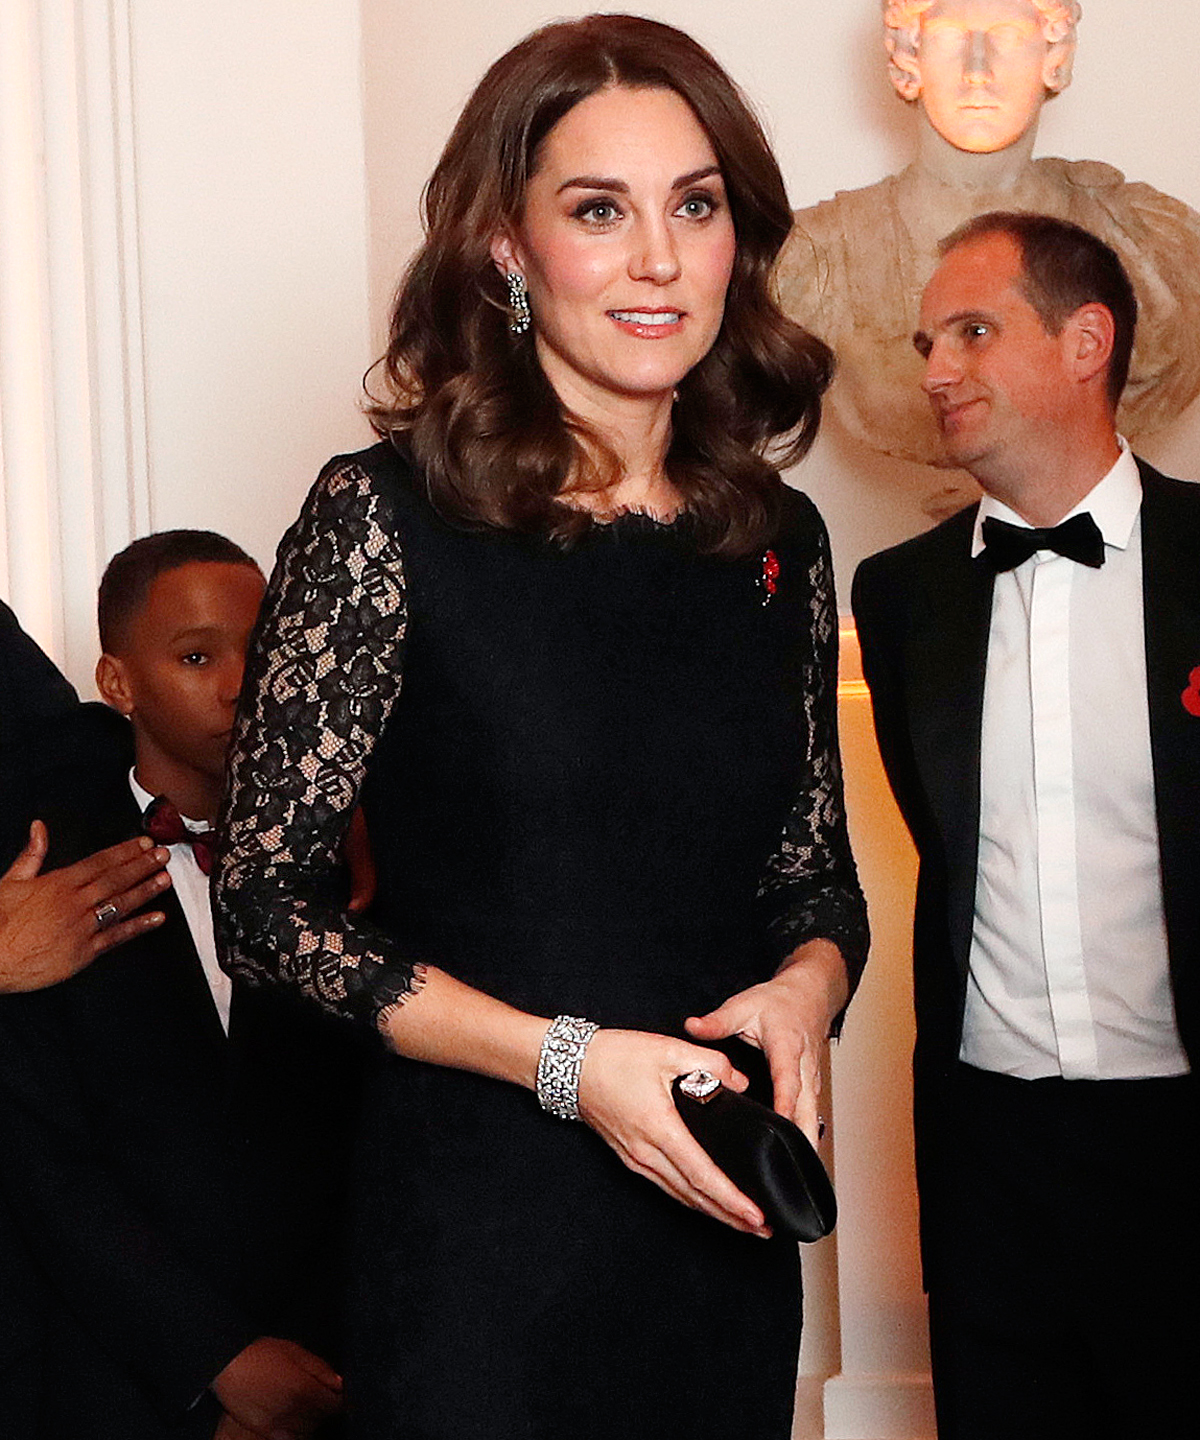 Kate Middleton Borrowed This Diamond Bracelet from Queen Elizabeth